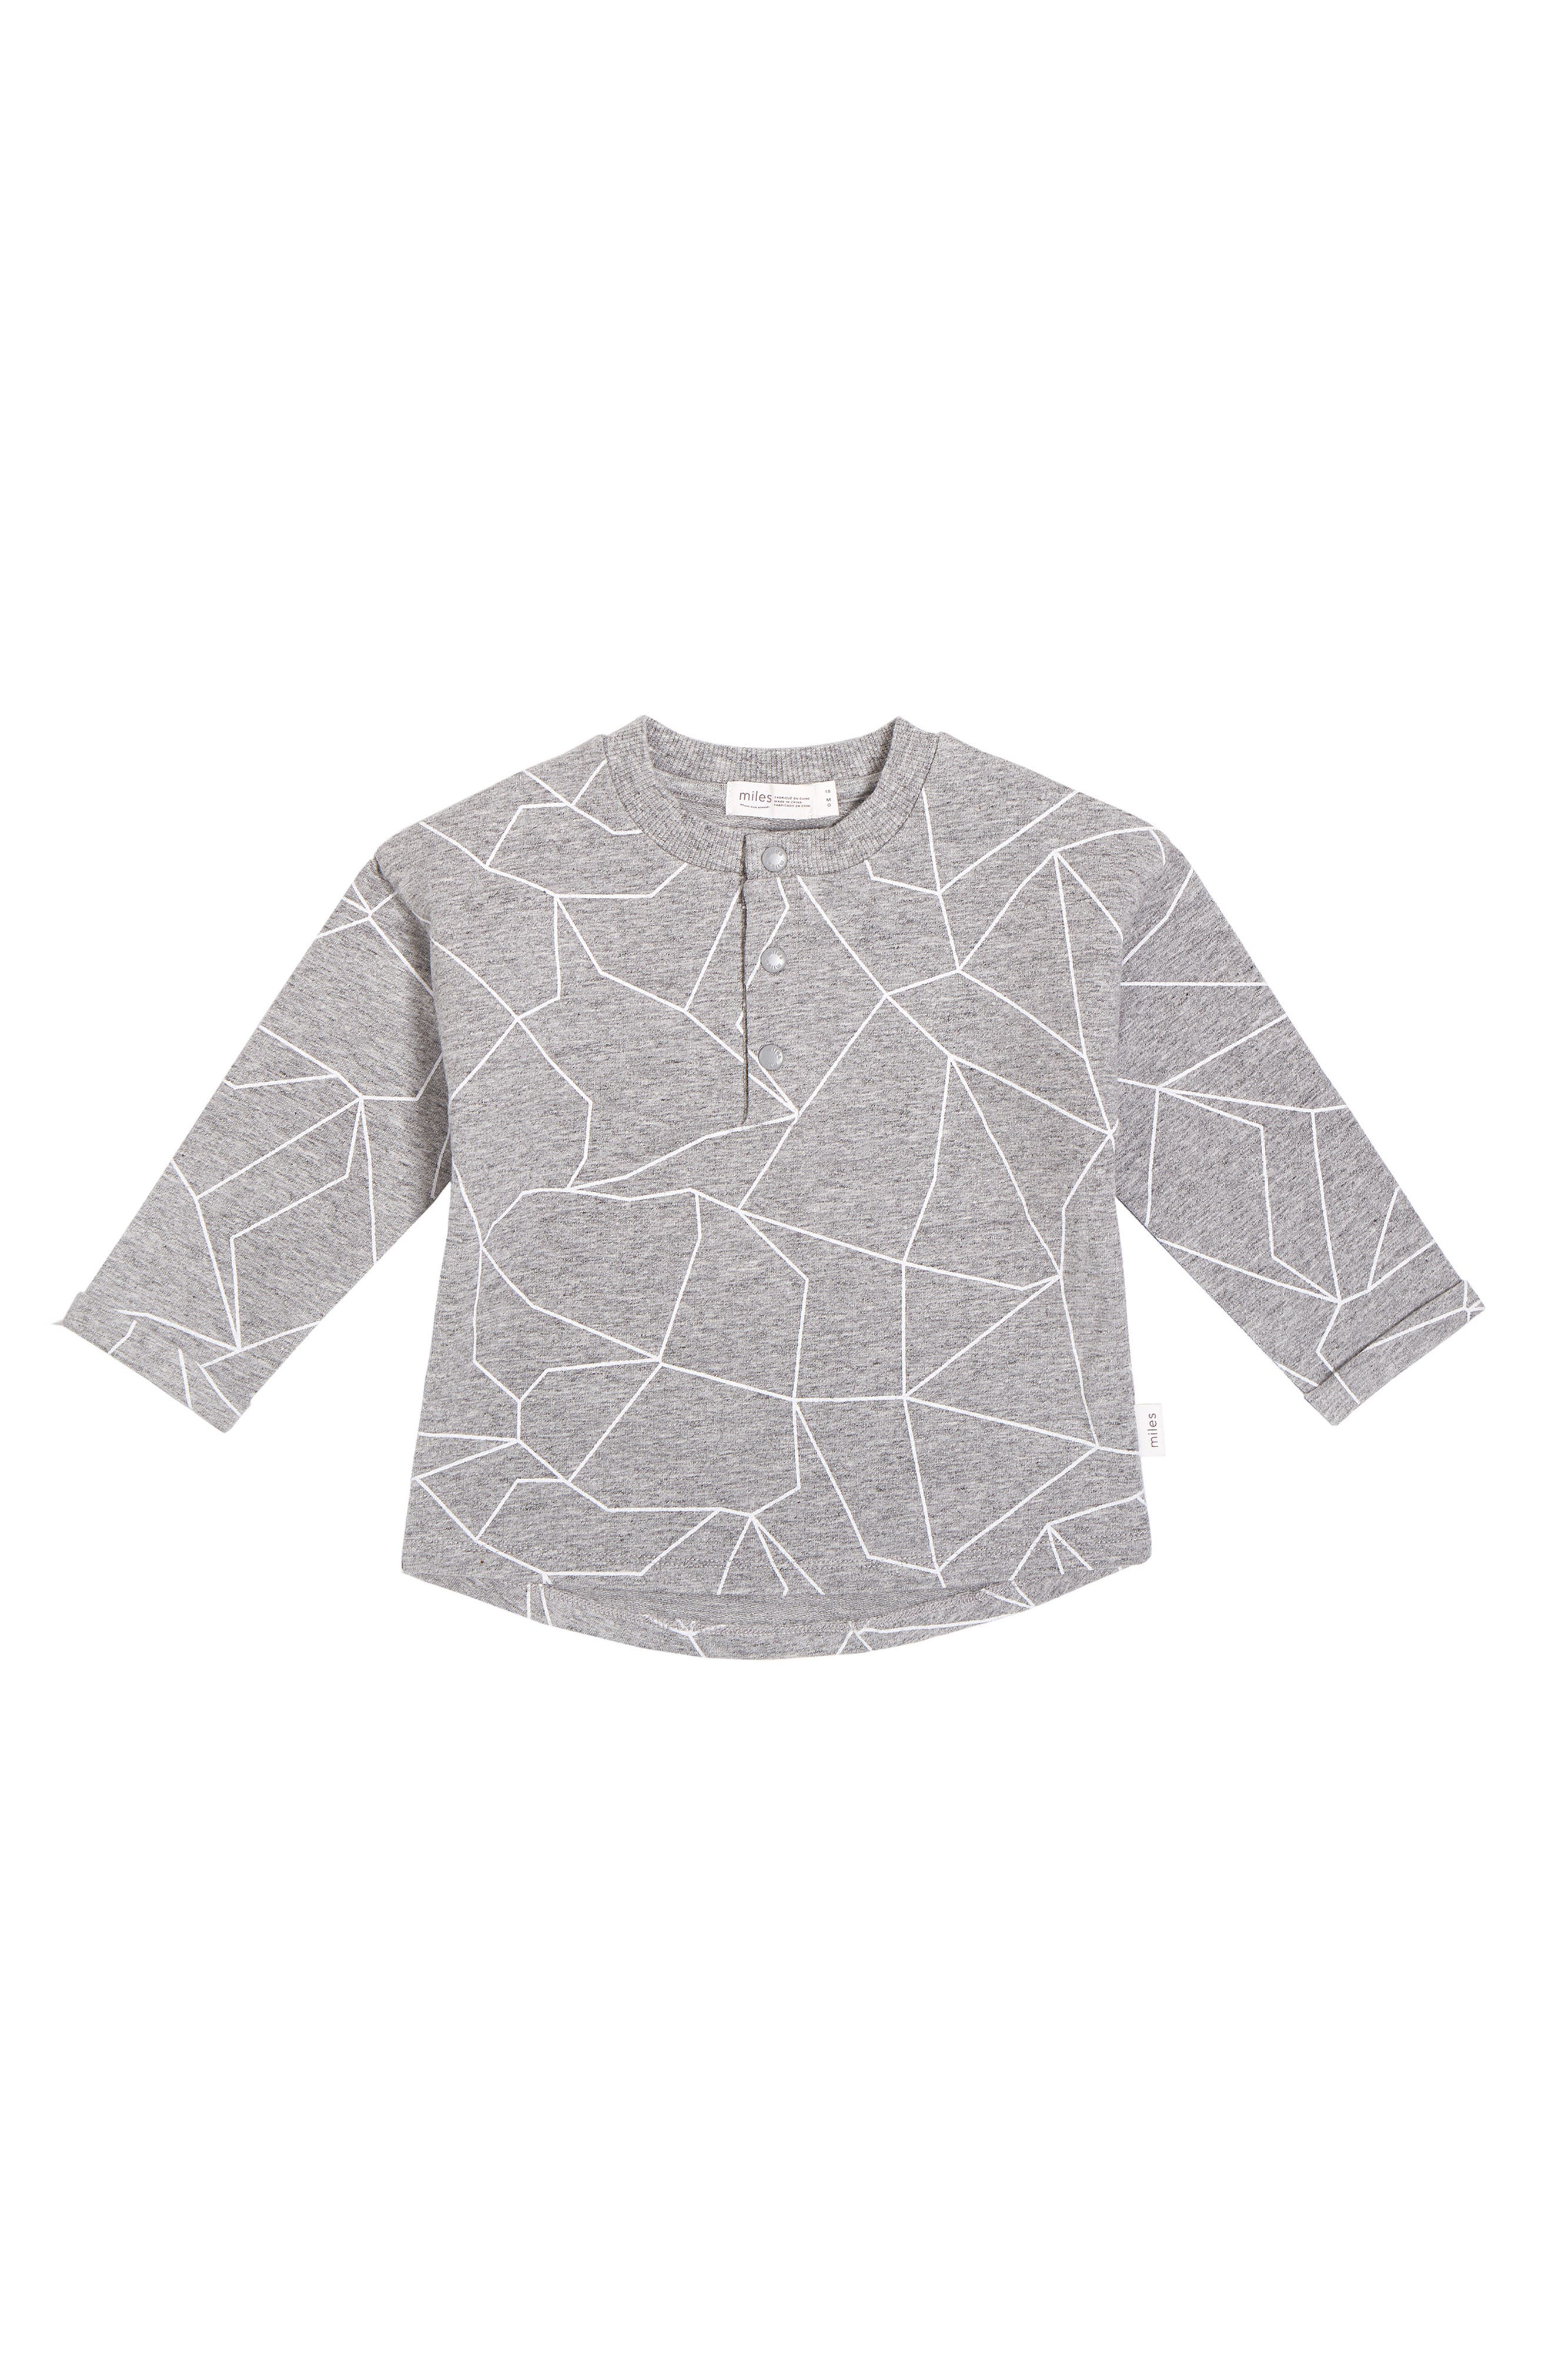 A geometric pattern details a long-sleeve henley-style shirt made from soft stretch cotton to keep baby cozy. Style Name: Miles Geometric Graphic Shirt (Baby). Style Number: 6114873. Available in stores.